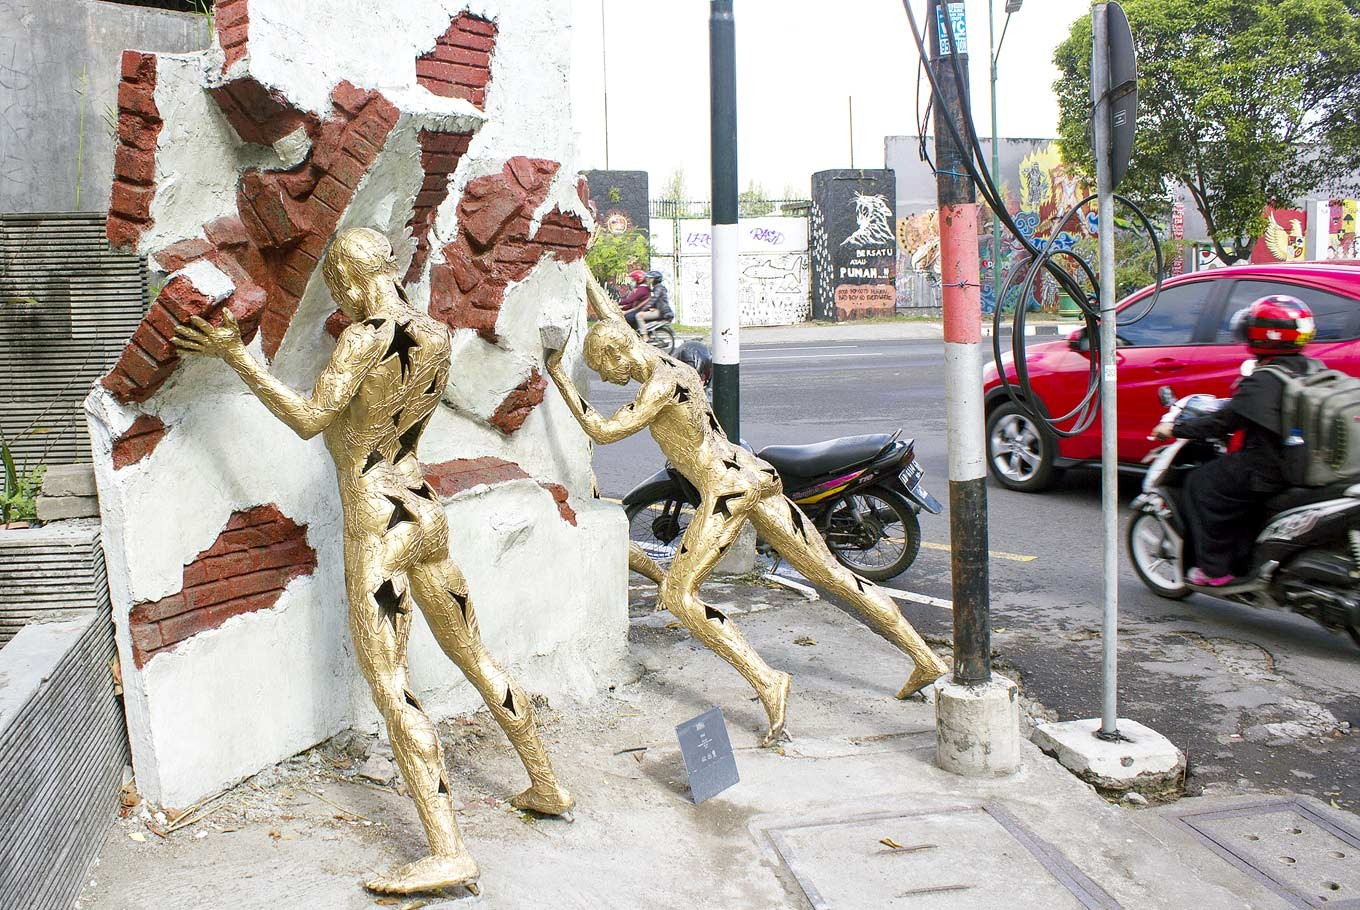 Street sculpture project takes over Yogyakarta's Kotabaru